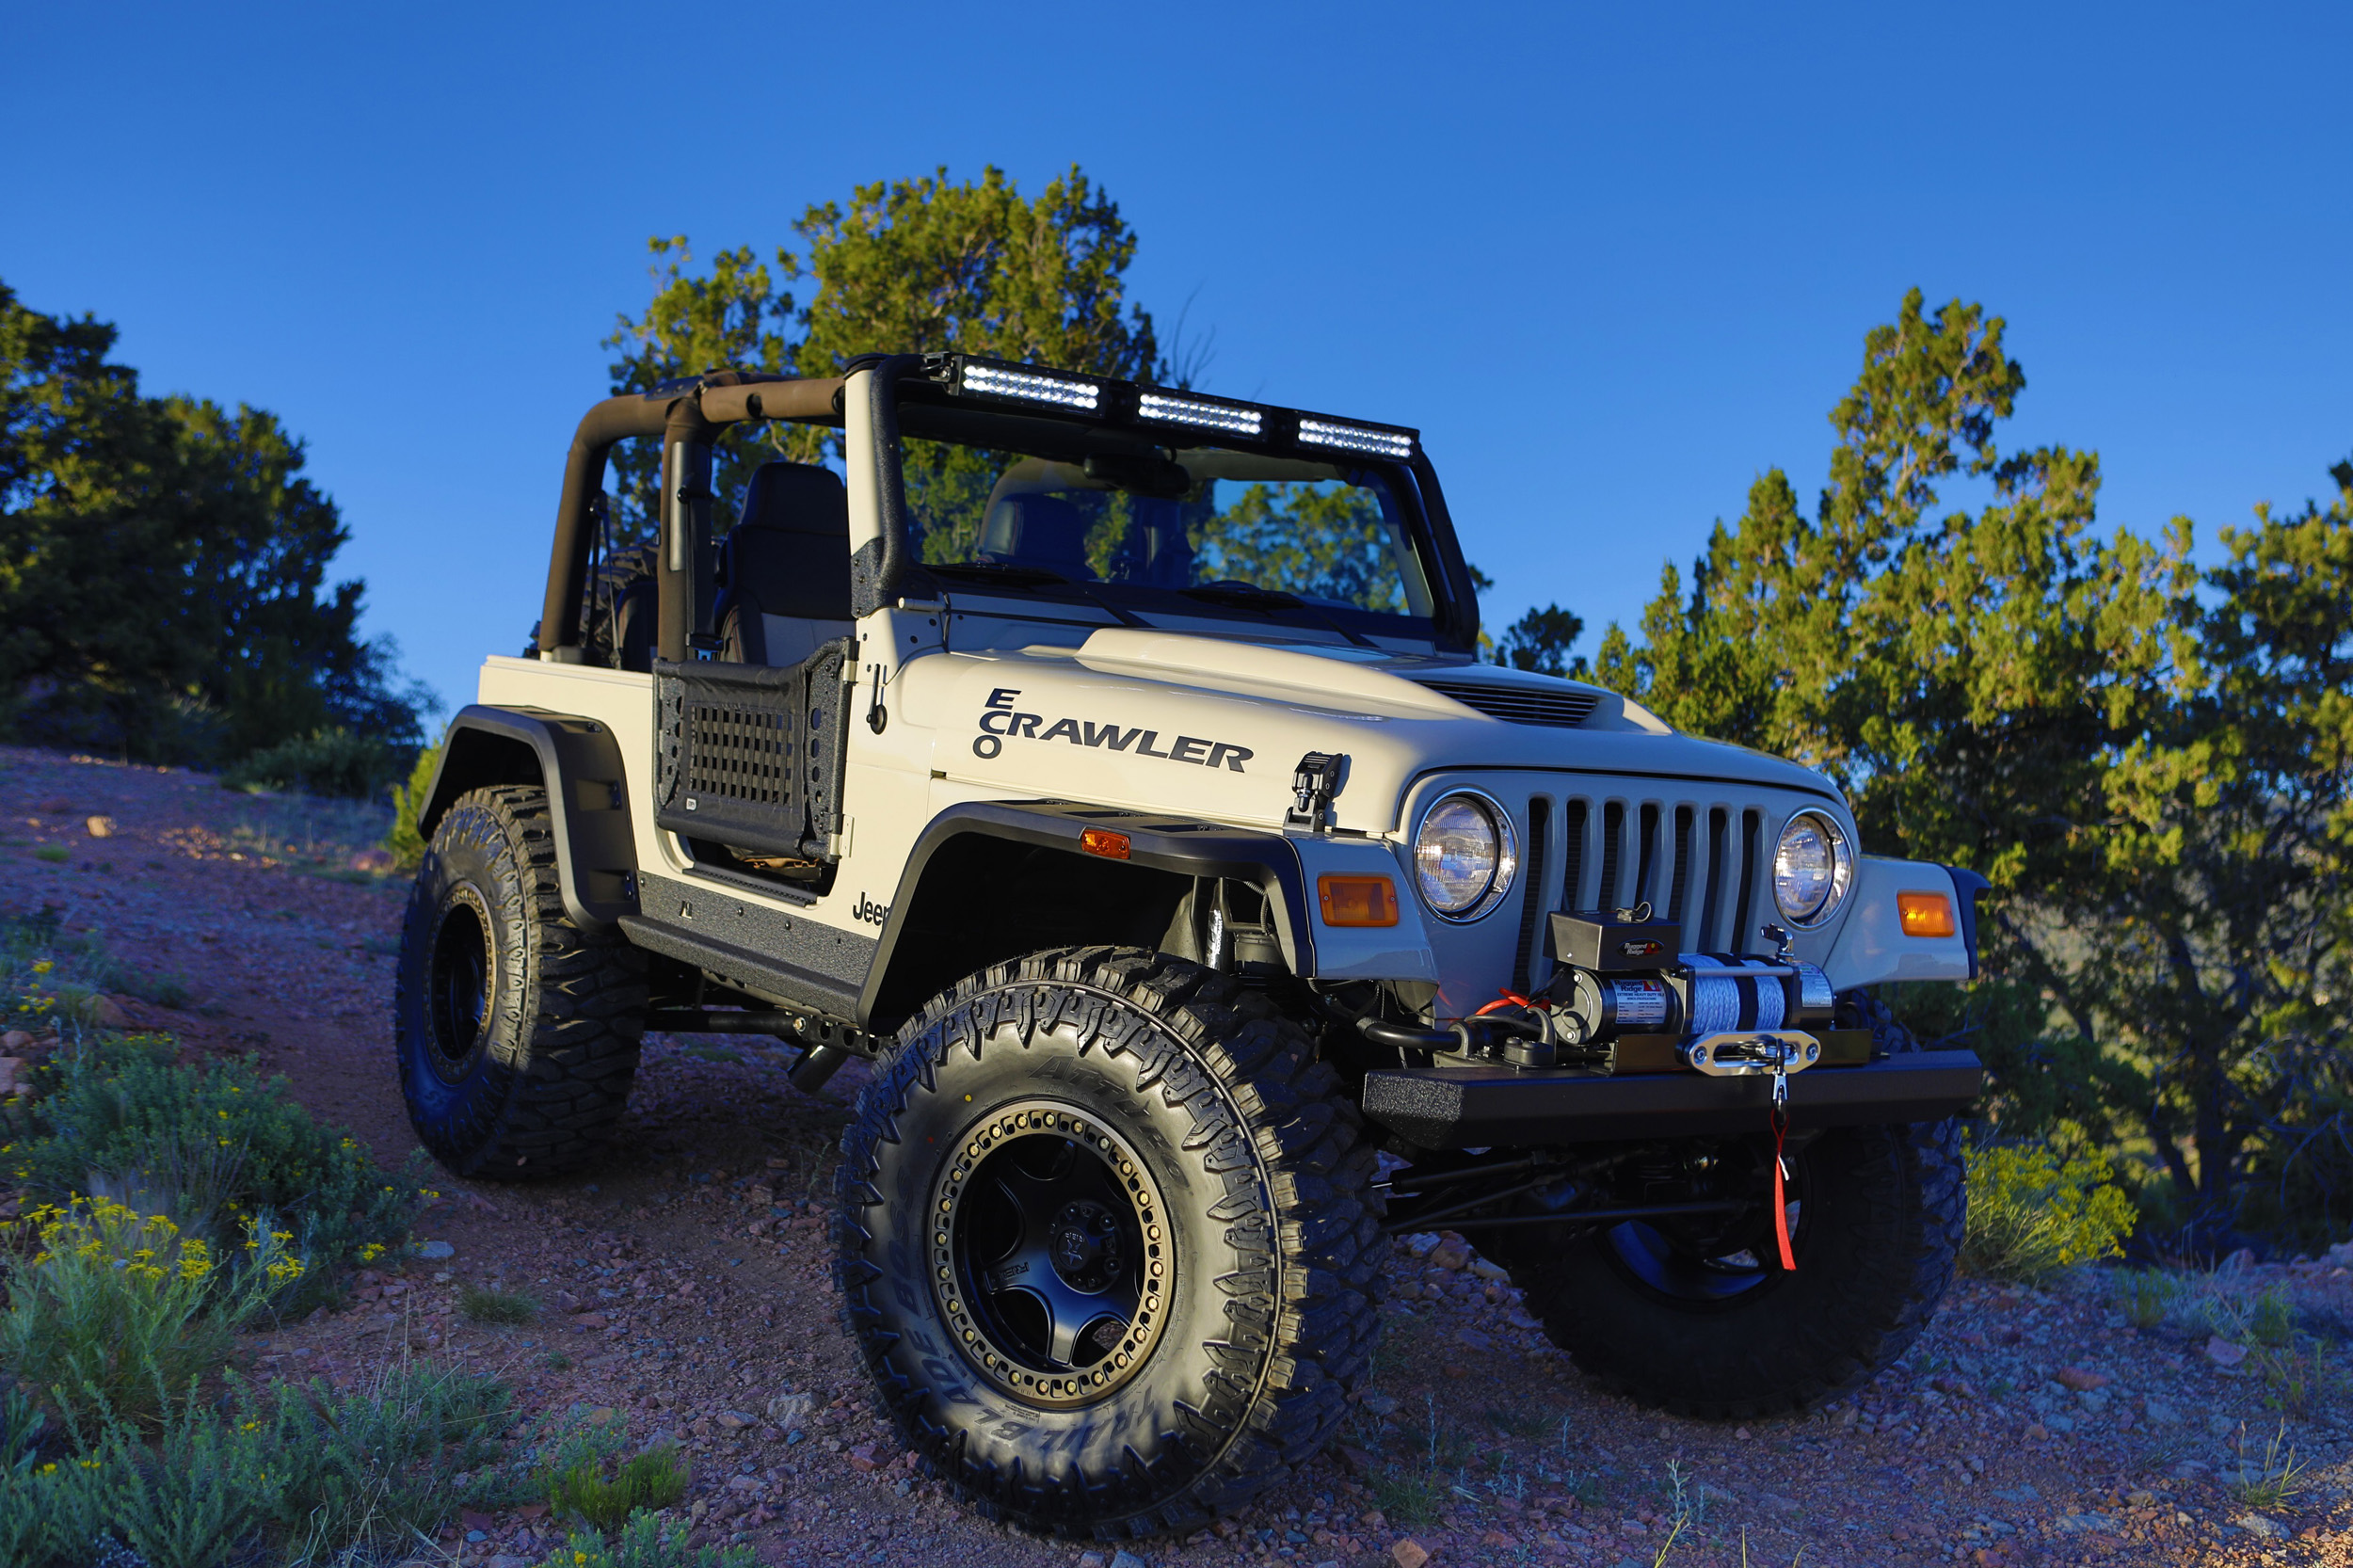 2005 Jeep Wrangler customized by the Santa Fe Early College Opportunities (photo credit- Gerry Ruelas Photography)